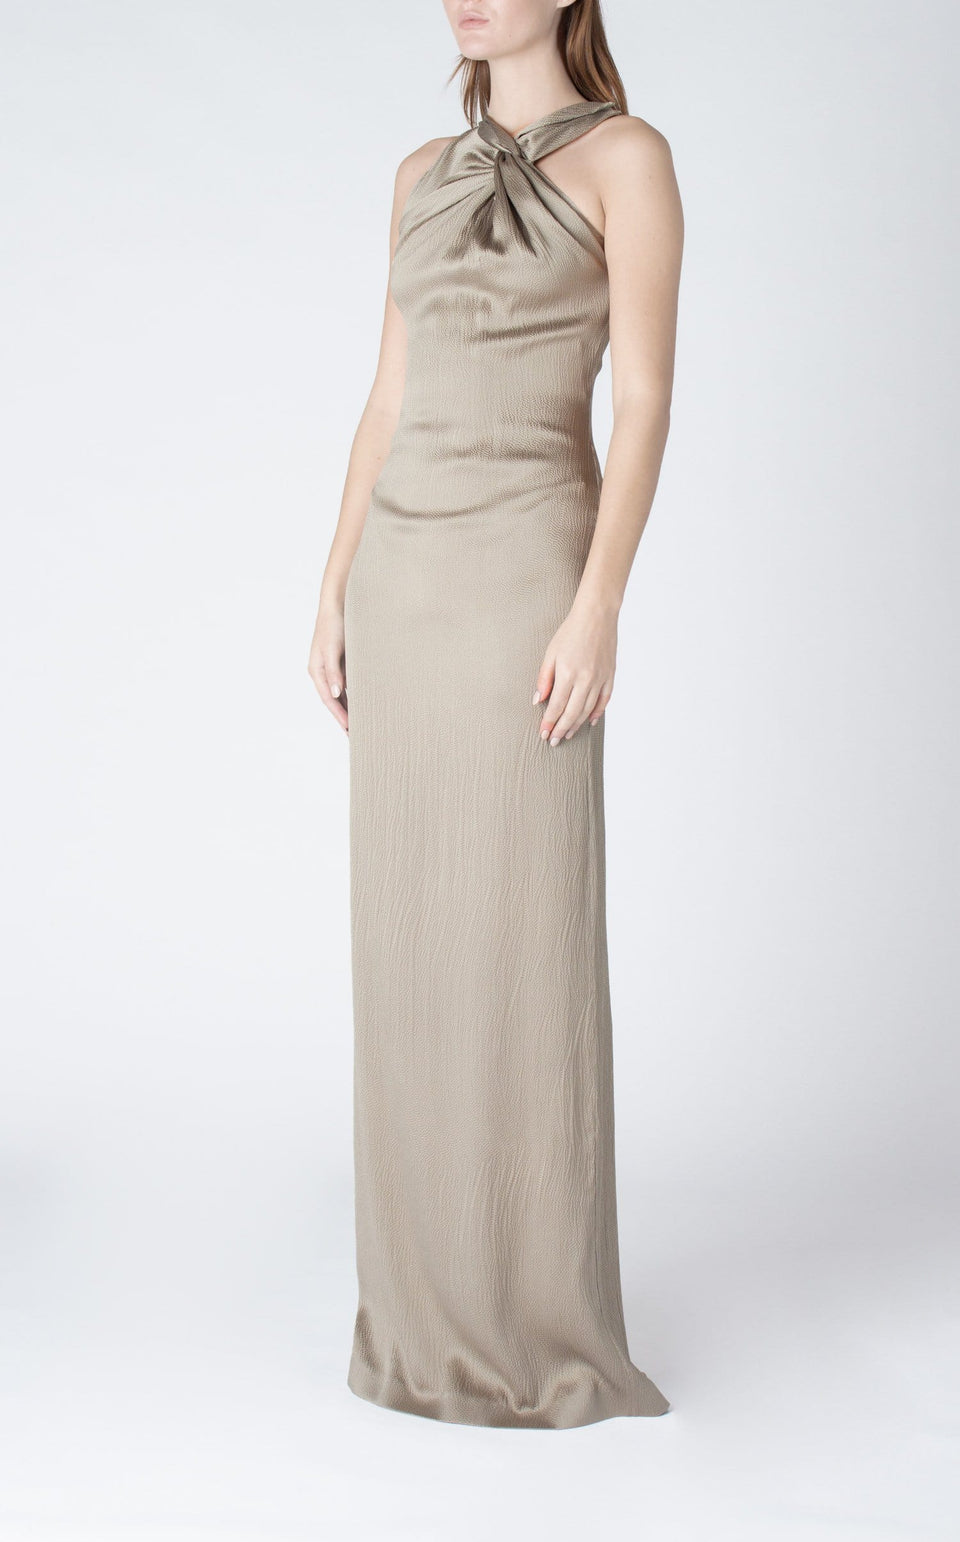 Gazella Gown